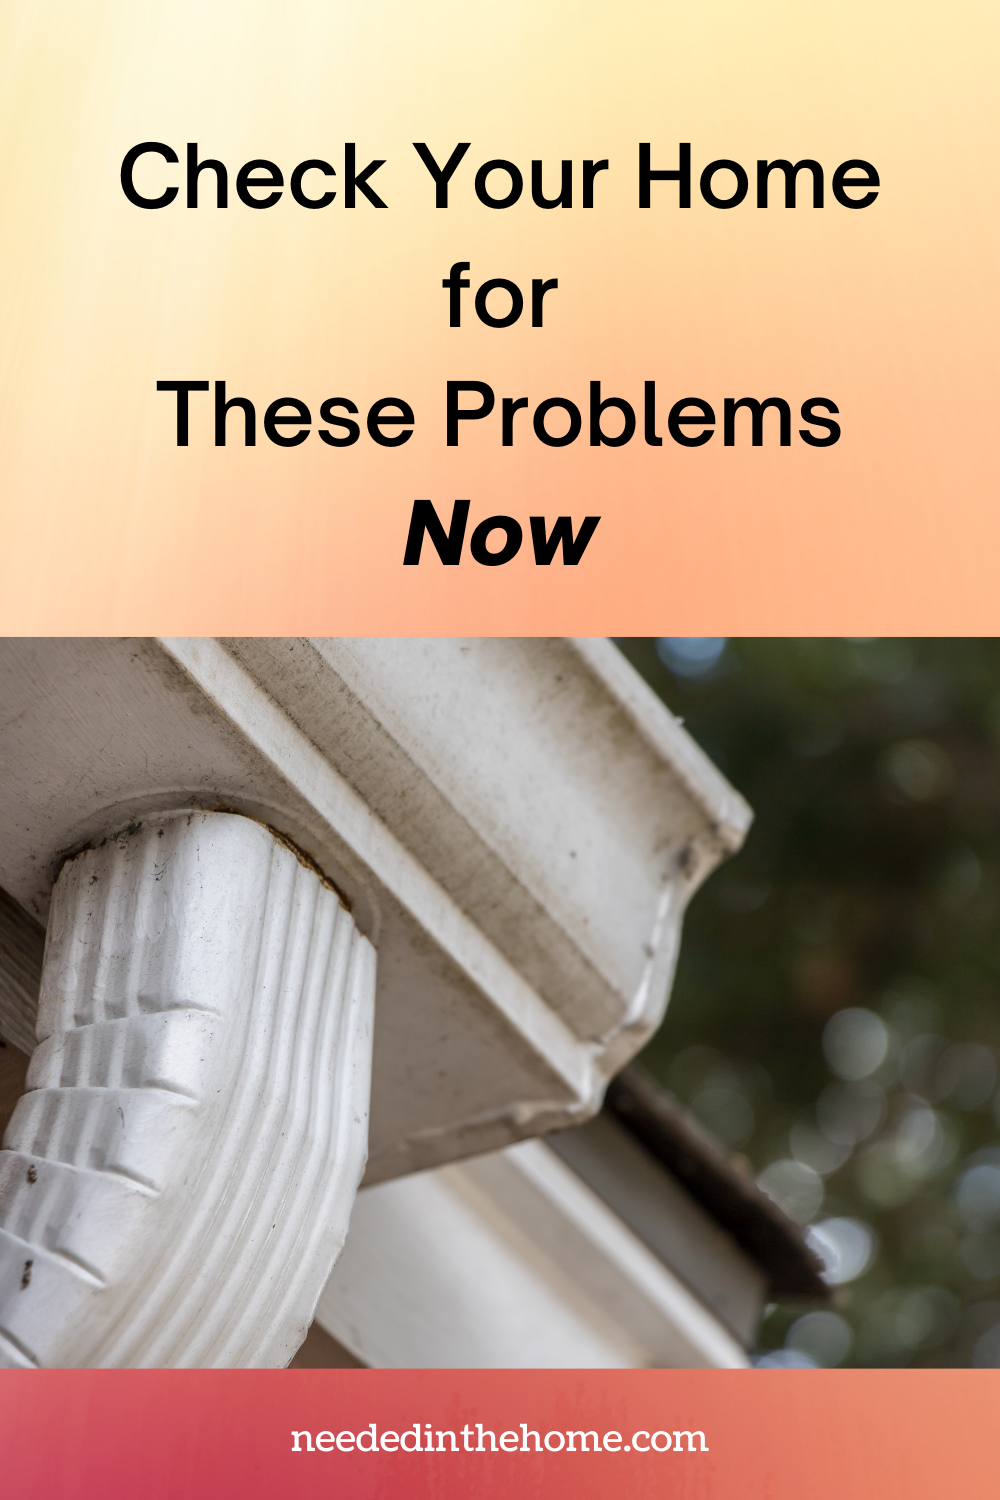 pinterest-pin-description Check Your Home for These Problems Now rain gutters neededinthehome